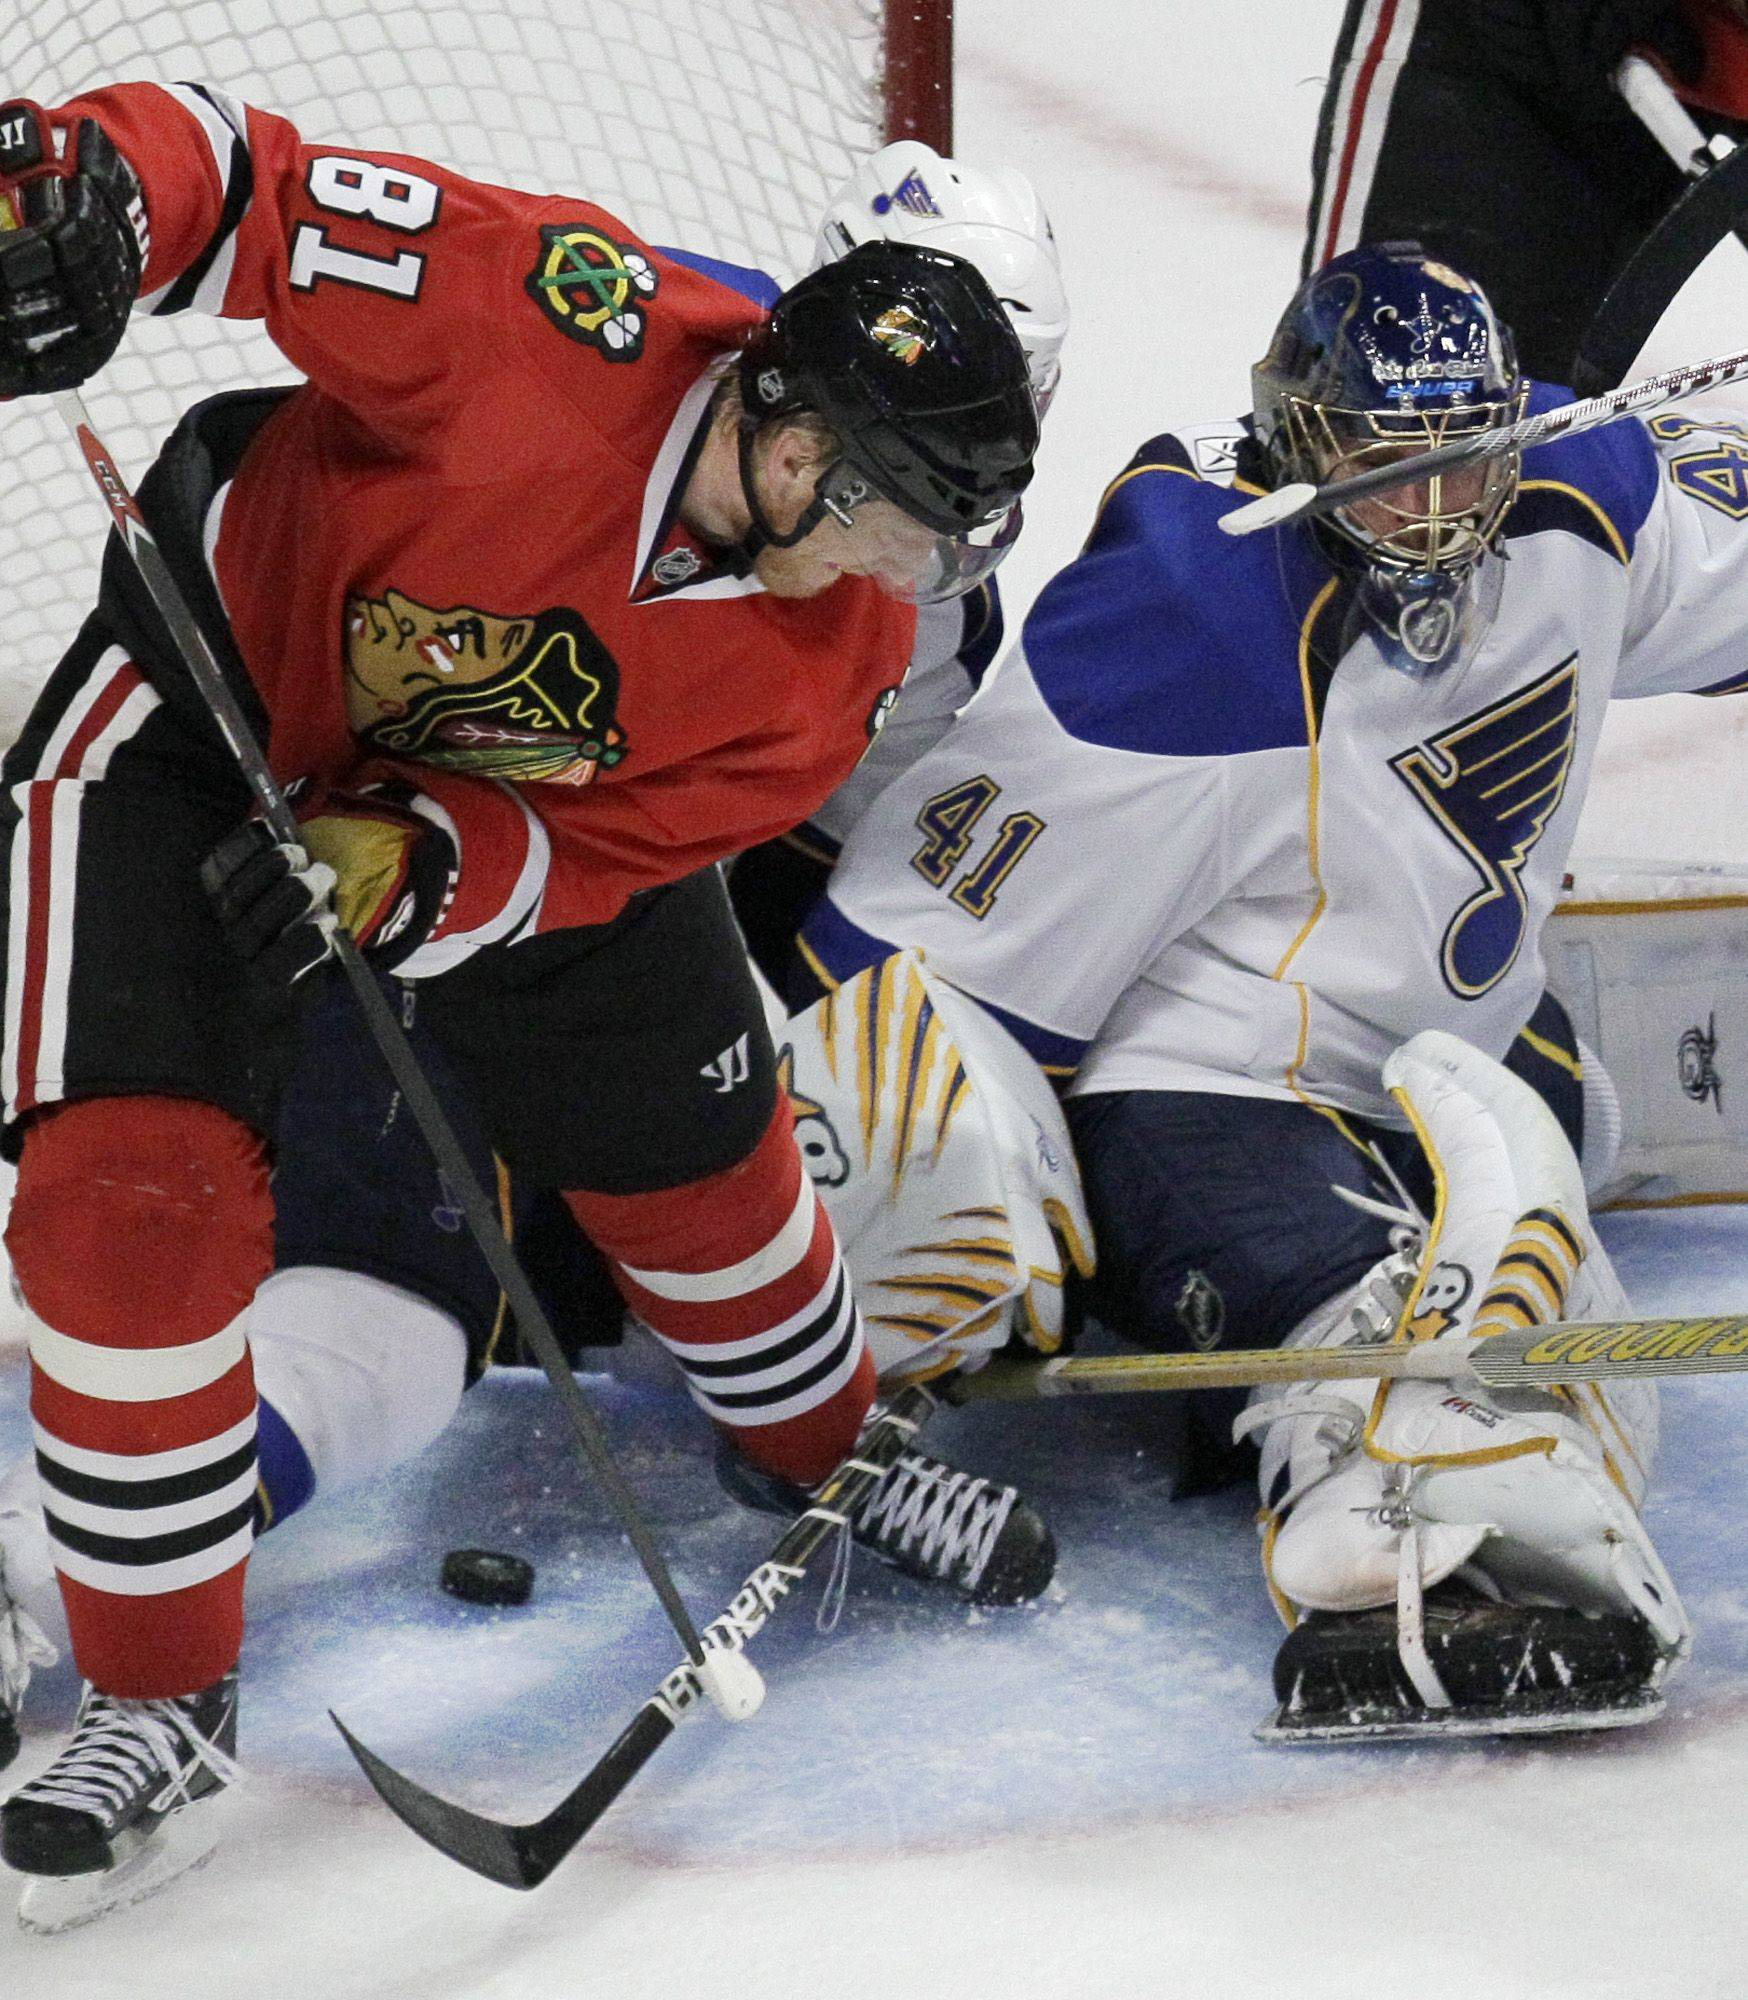 Marian Hossa slips the puck between his legs and past Blues goalie Jaroslav Halak to tie the game late in the third period Monday night at the United Center. It was Hossa's second goal of the game and his seventh of the season